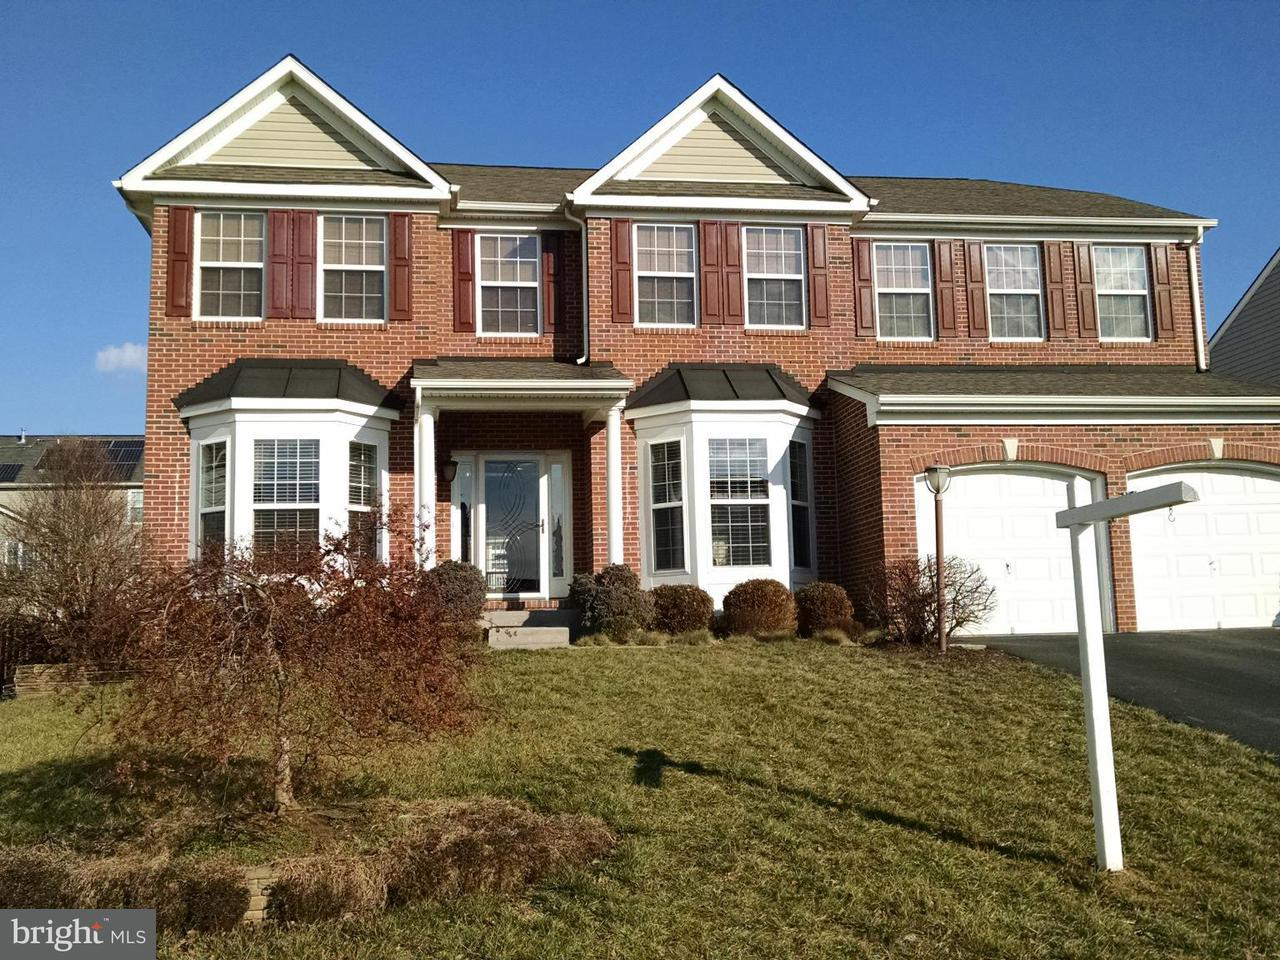 Single Family Home for Sale at 116 GREENWICH Drive 116 GREENWICH Drive Walkersville, Maryland 21793 United States